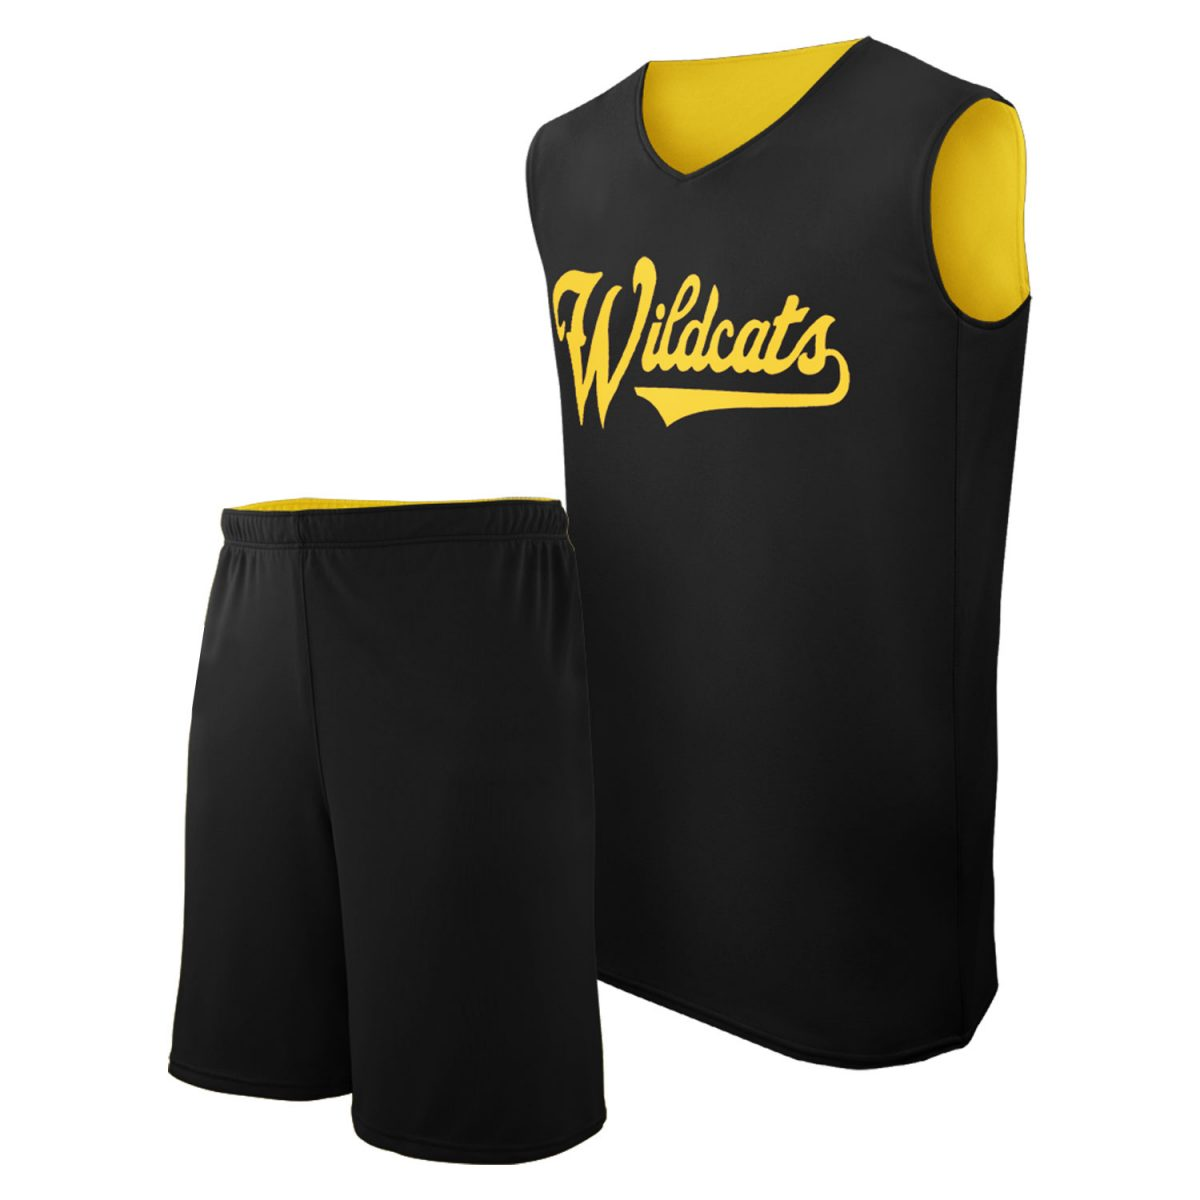 Boys Basketball Uniforms Manufacturers in Rajkot